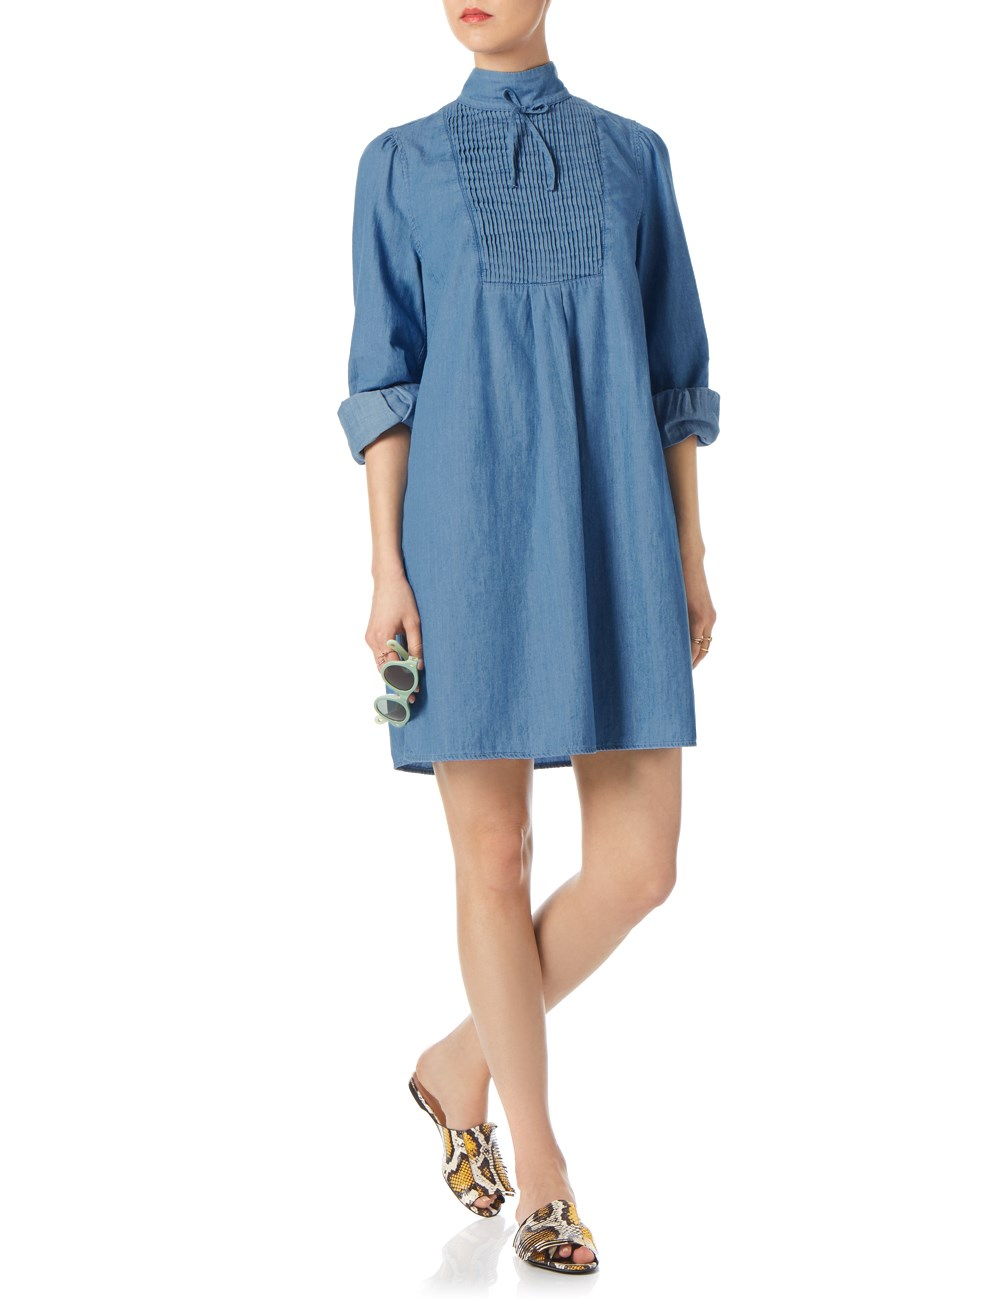 Awakening denim the julie dress